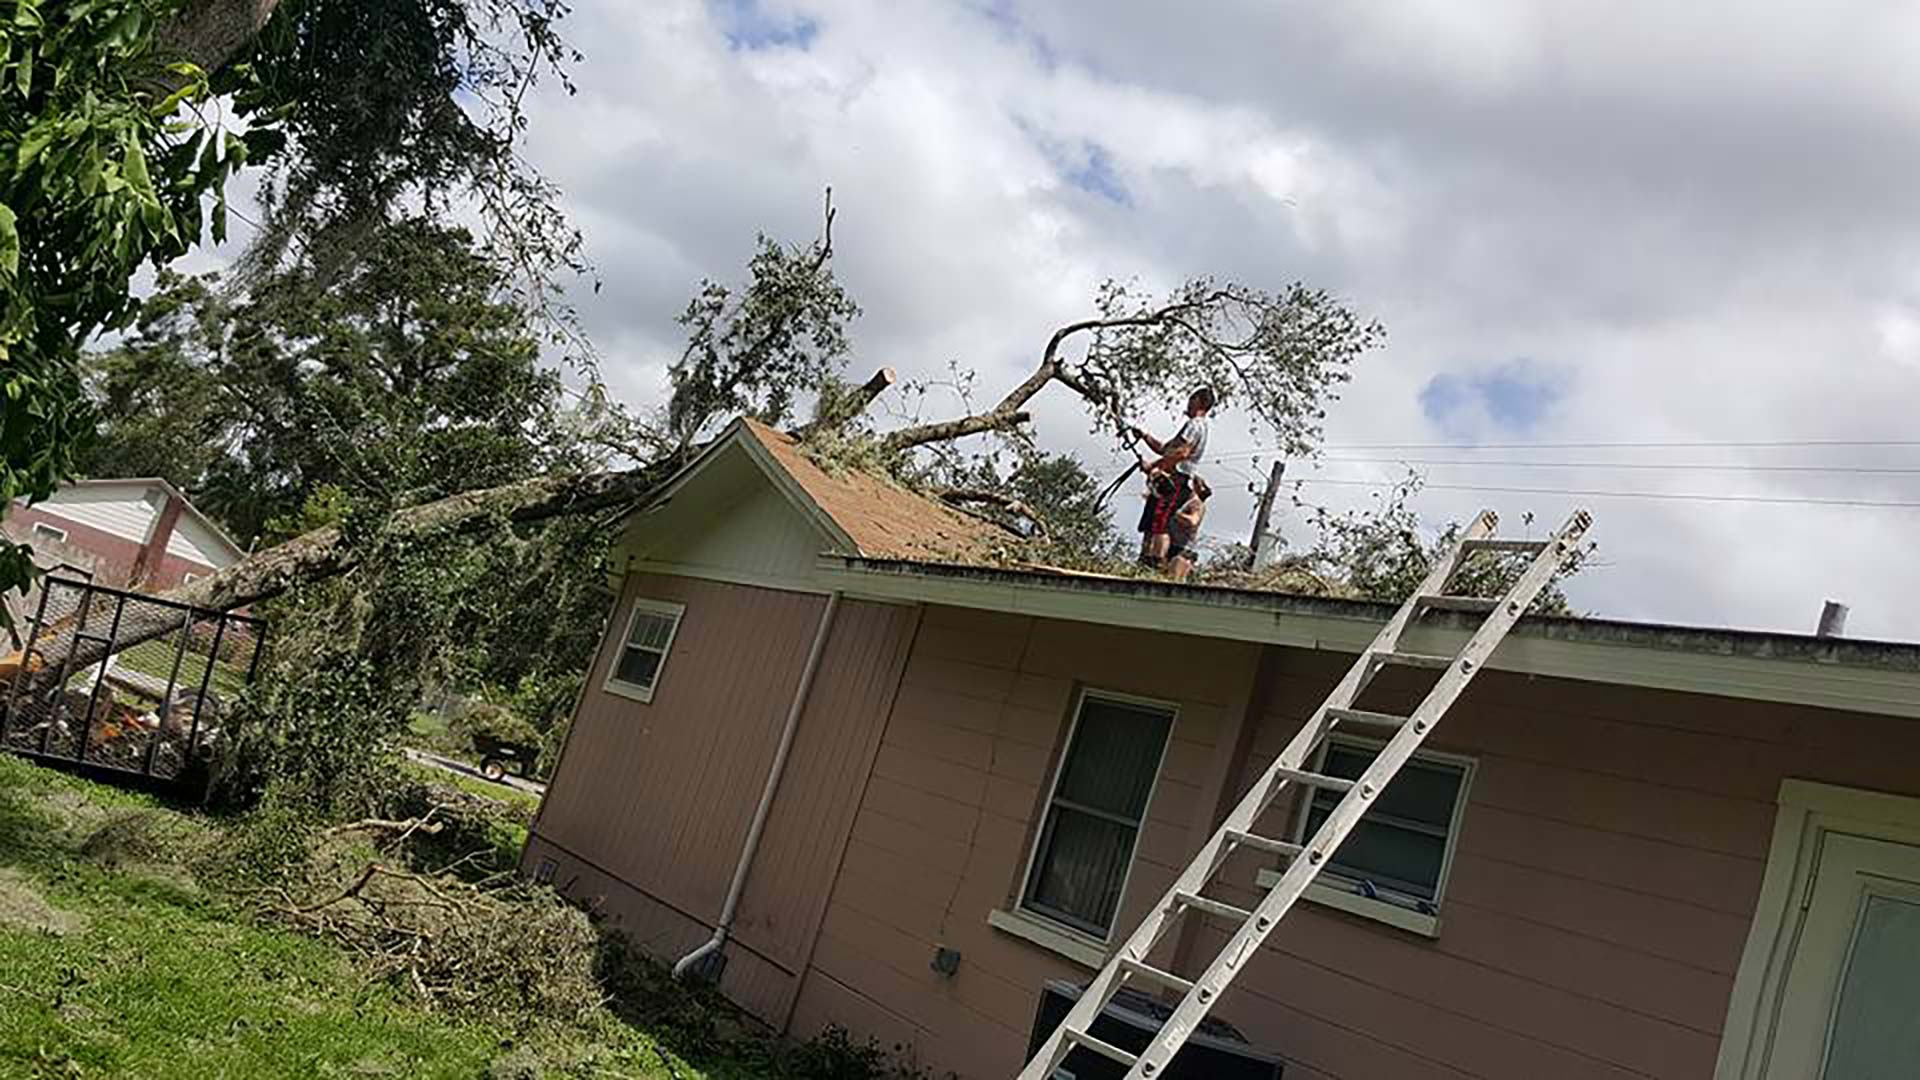 Tree Fell Through the Hunsberger's Home During Hurricane Irma